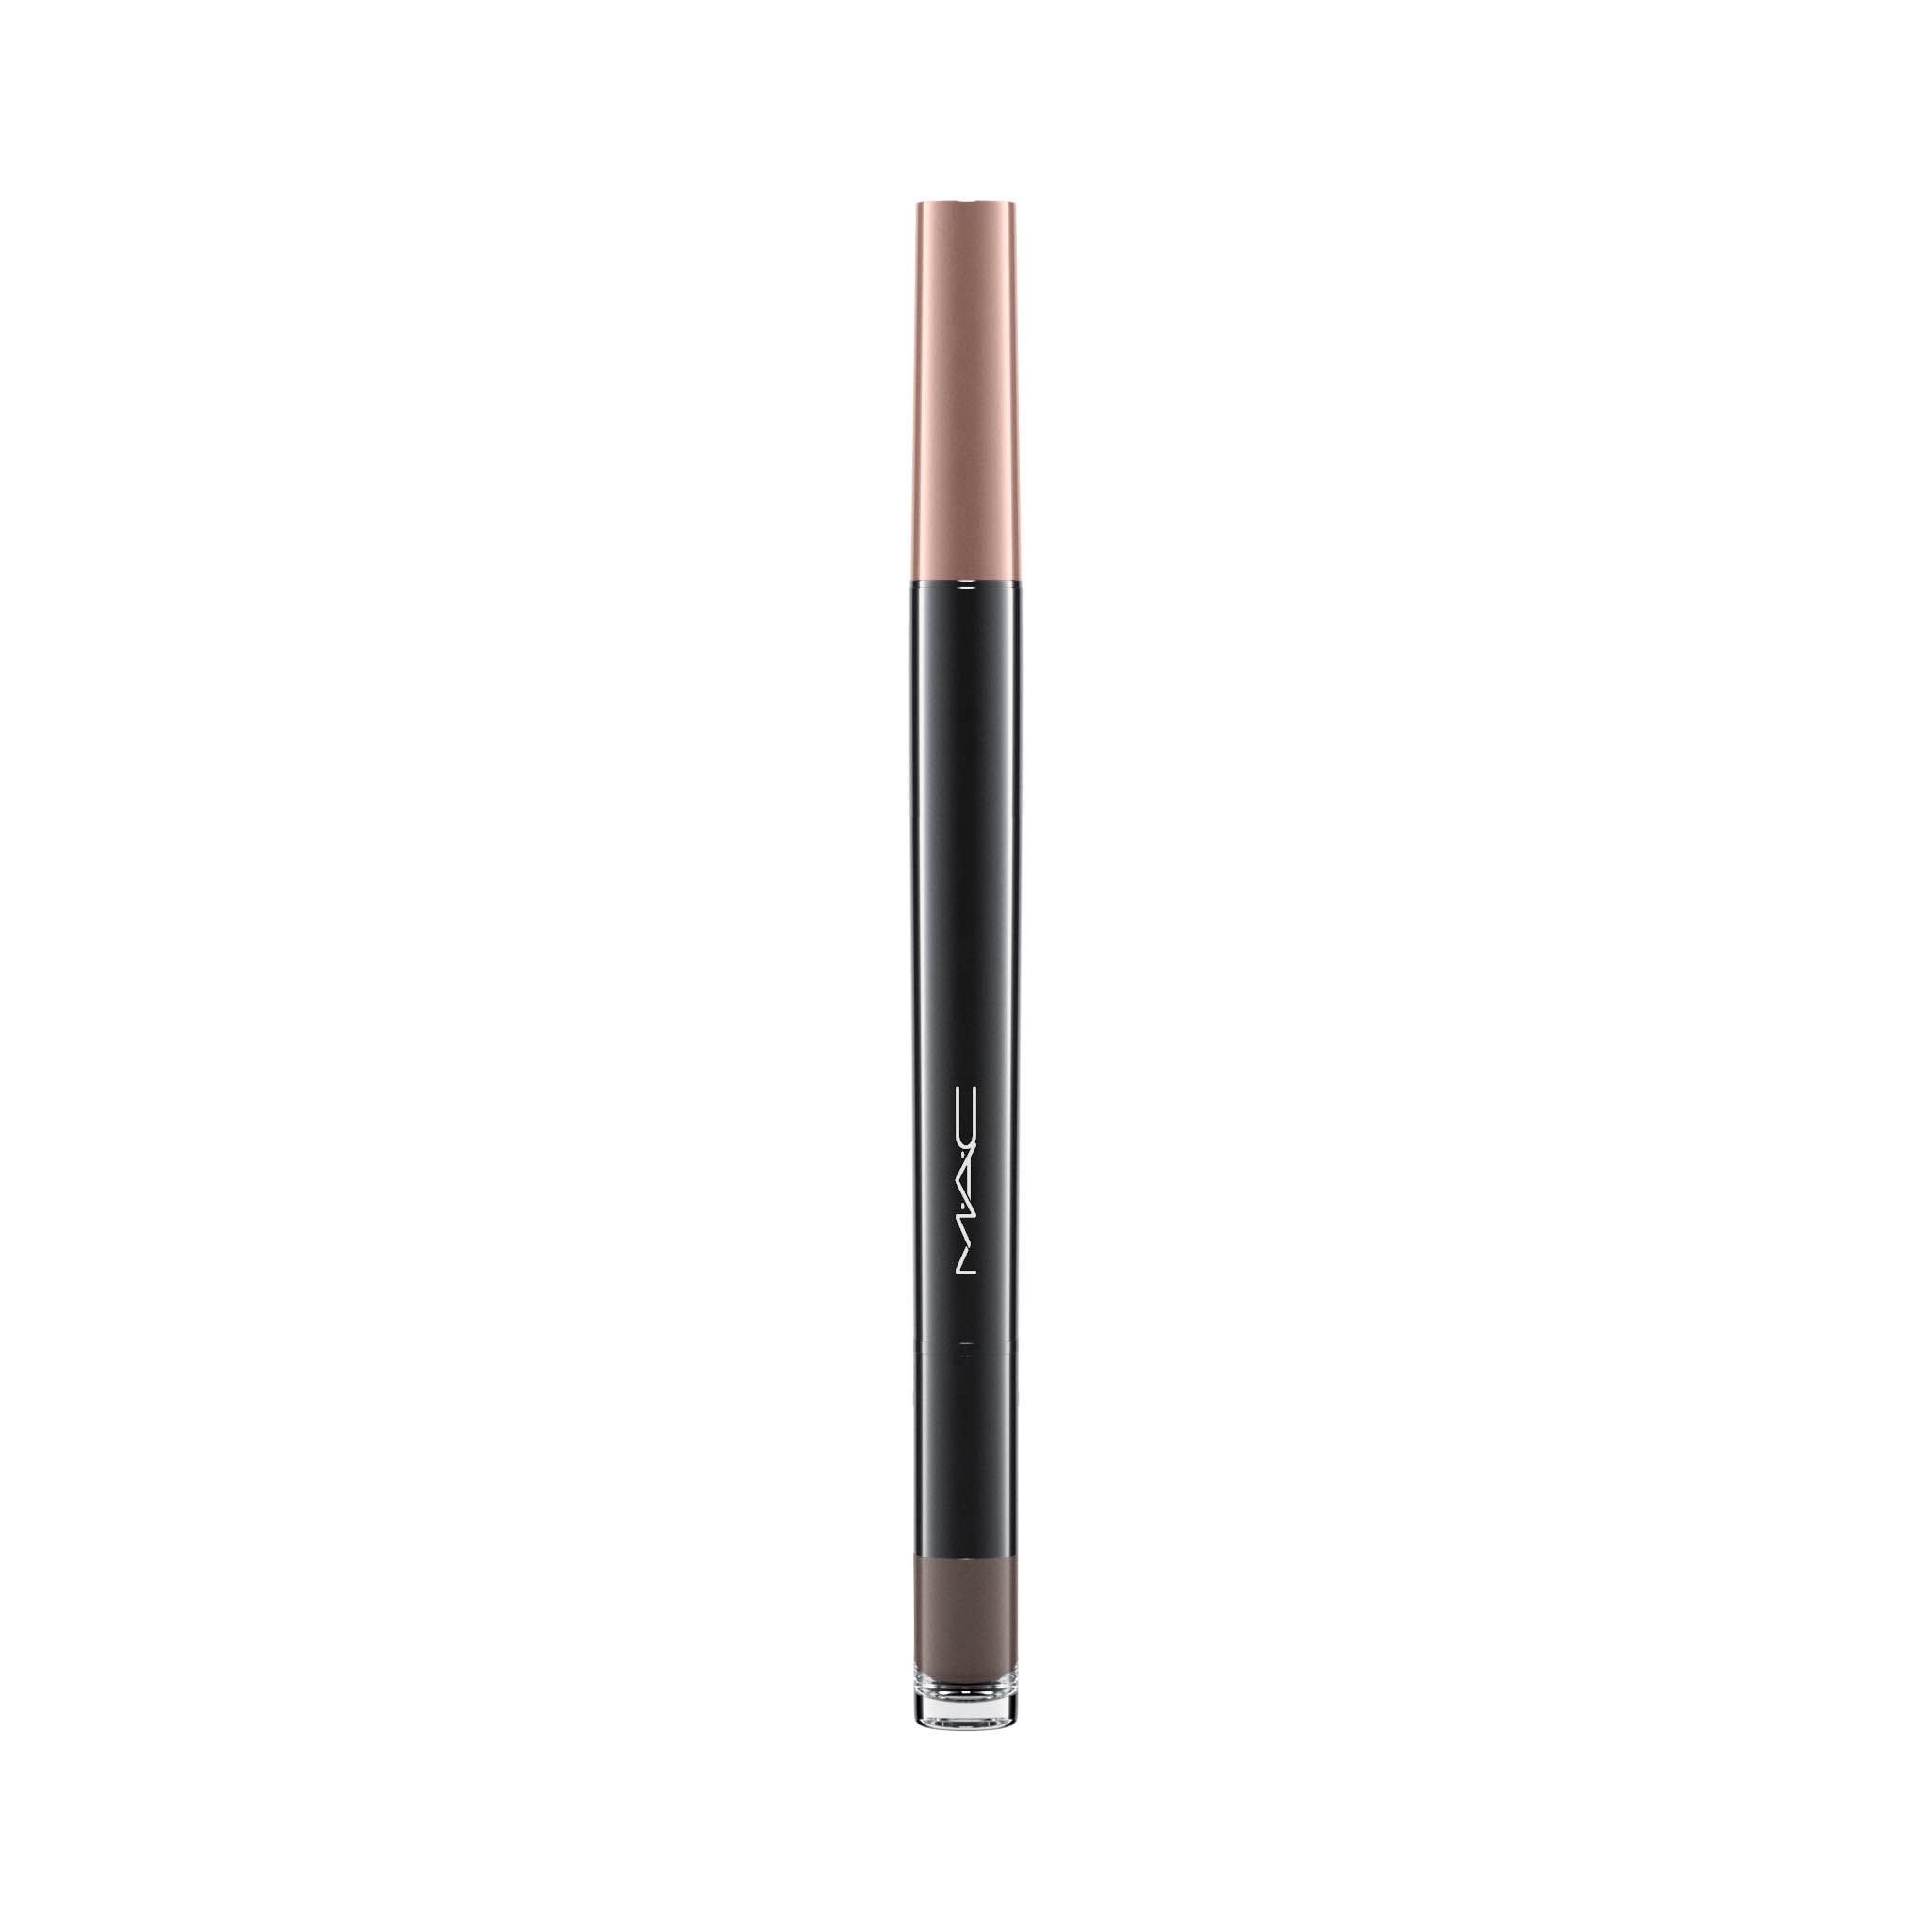 Shape & Shade Brow Tint Eyebrowpencil Spiked